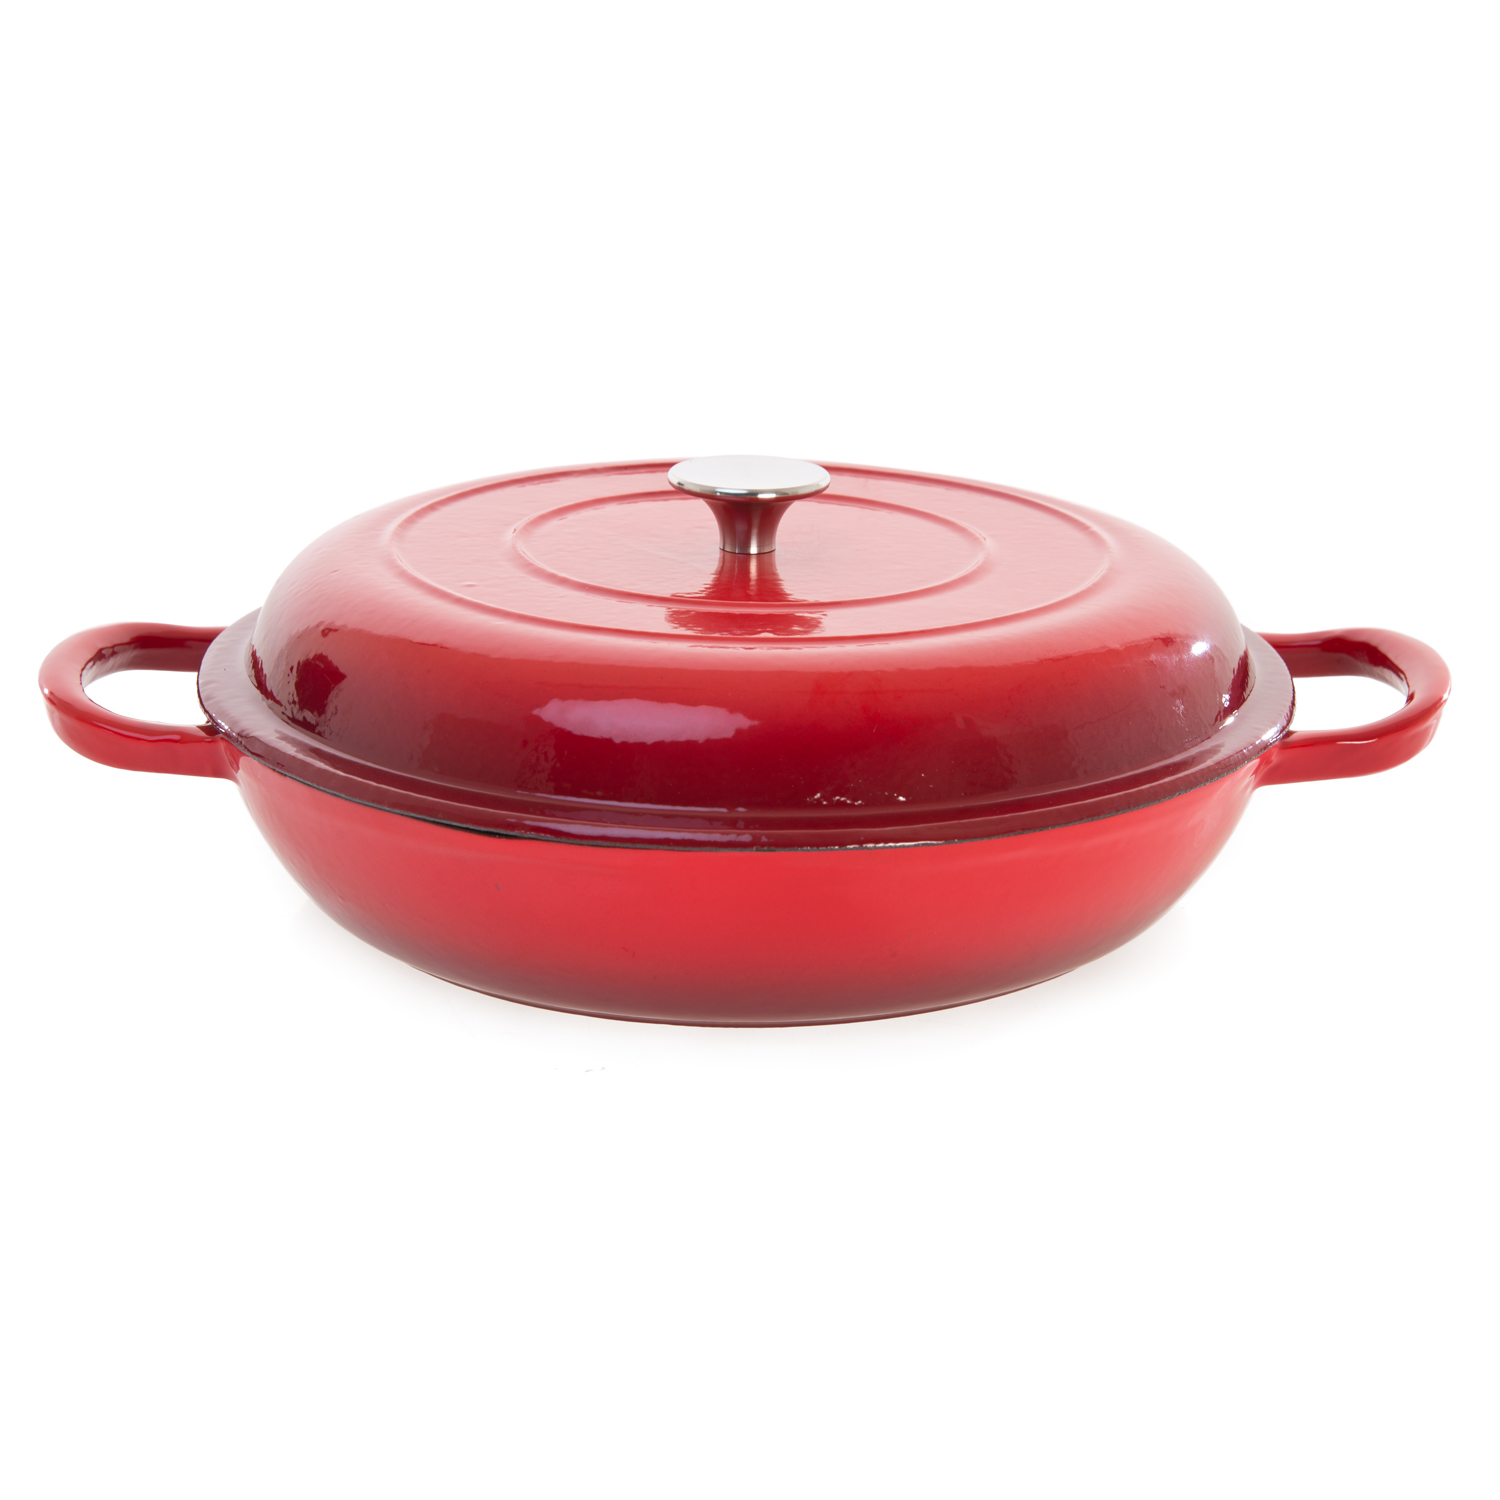 Image of Casa 30cm Cast Iron Shallow Casserole Dish, Red Ombre